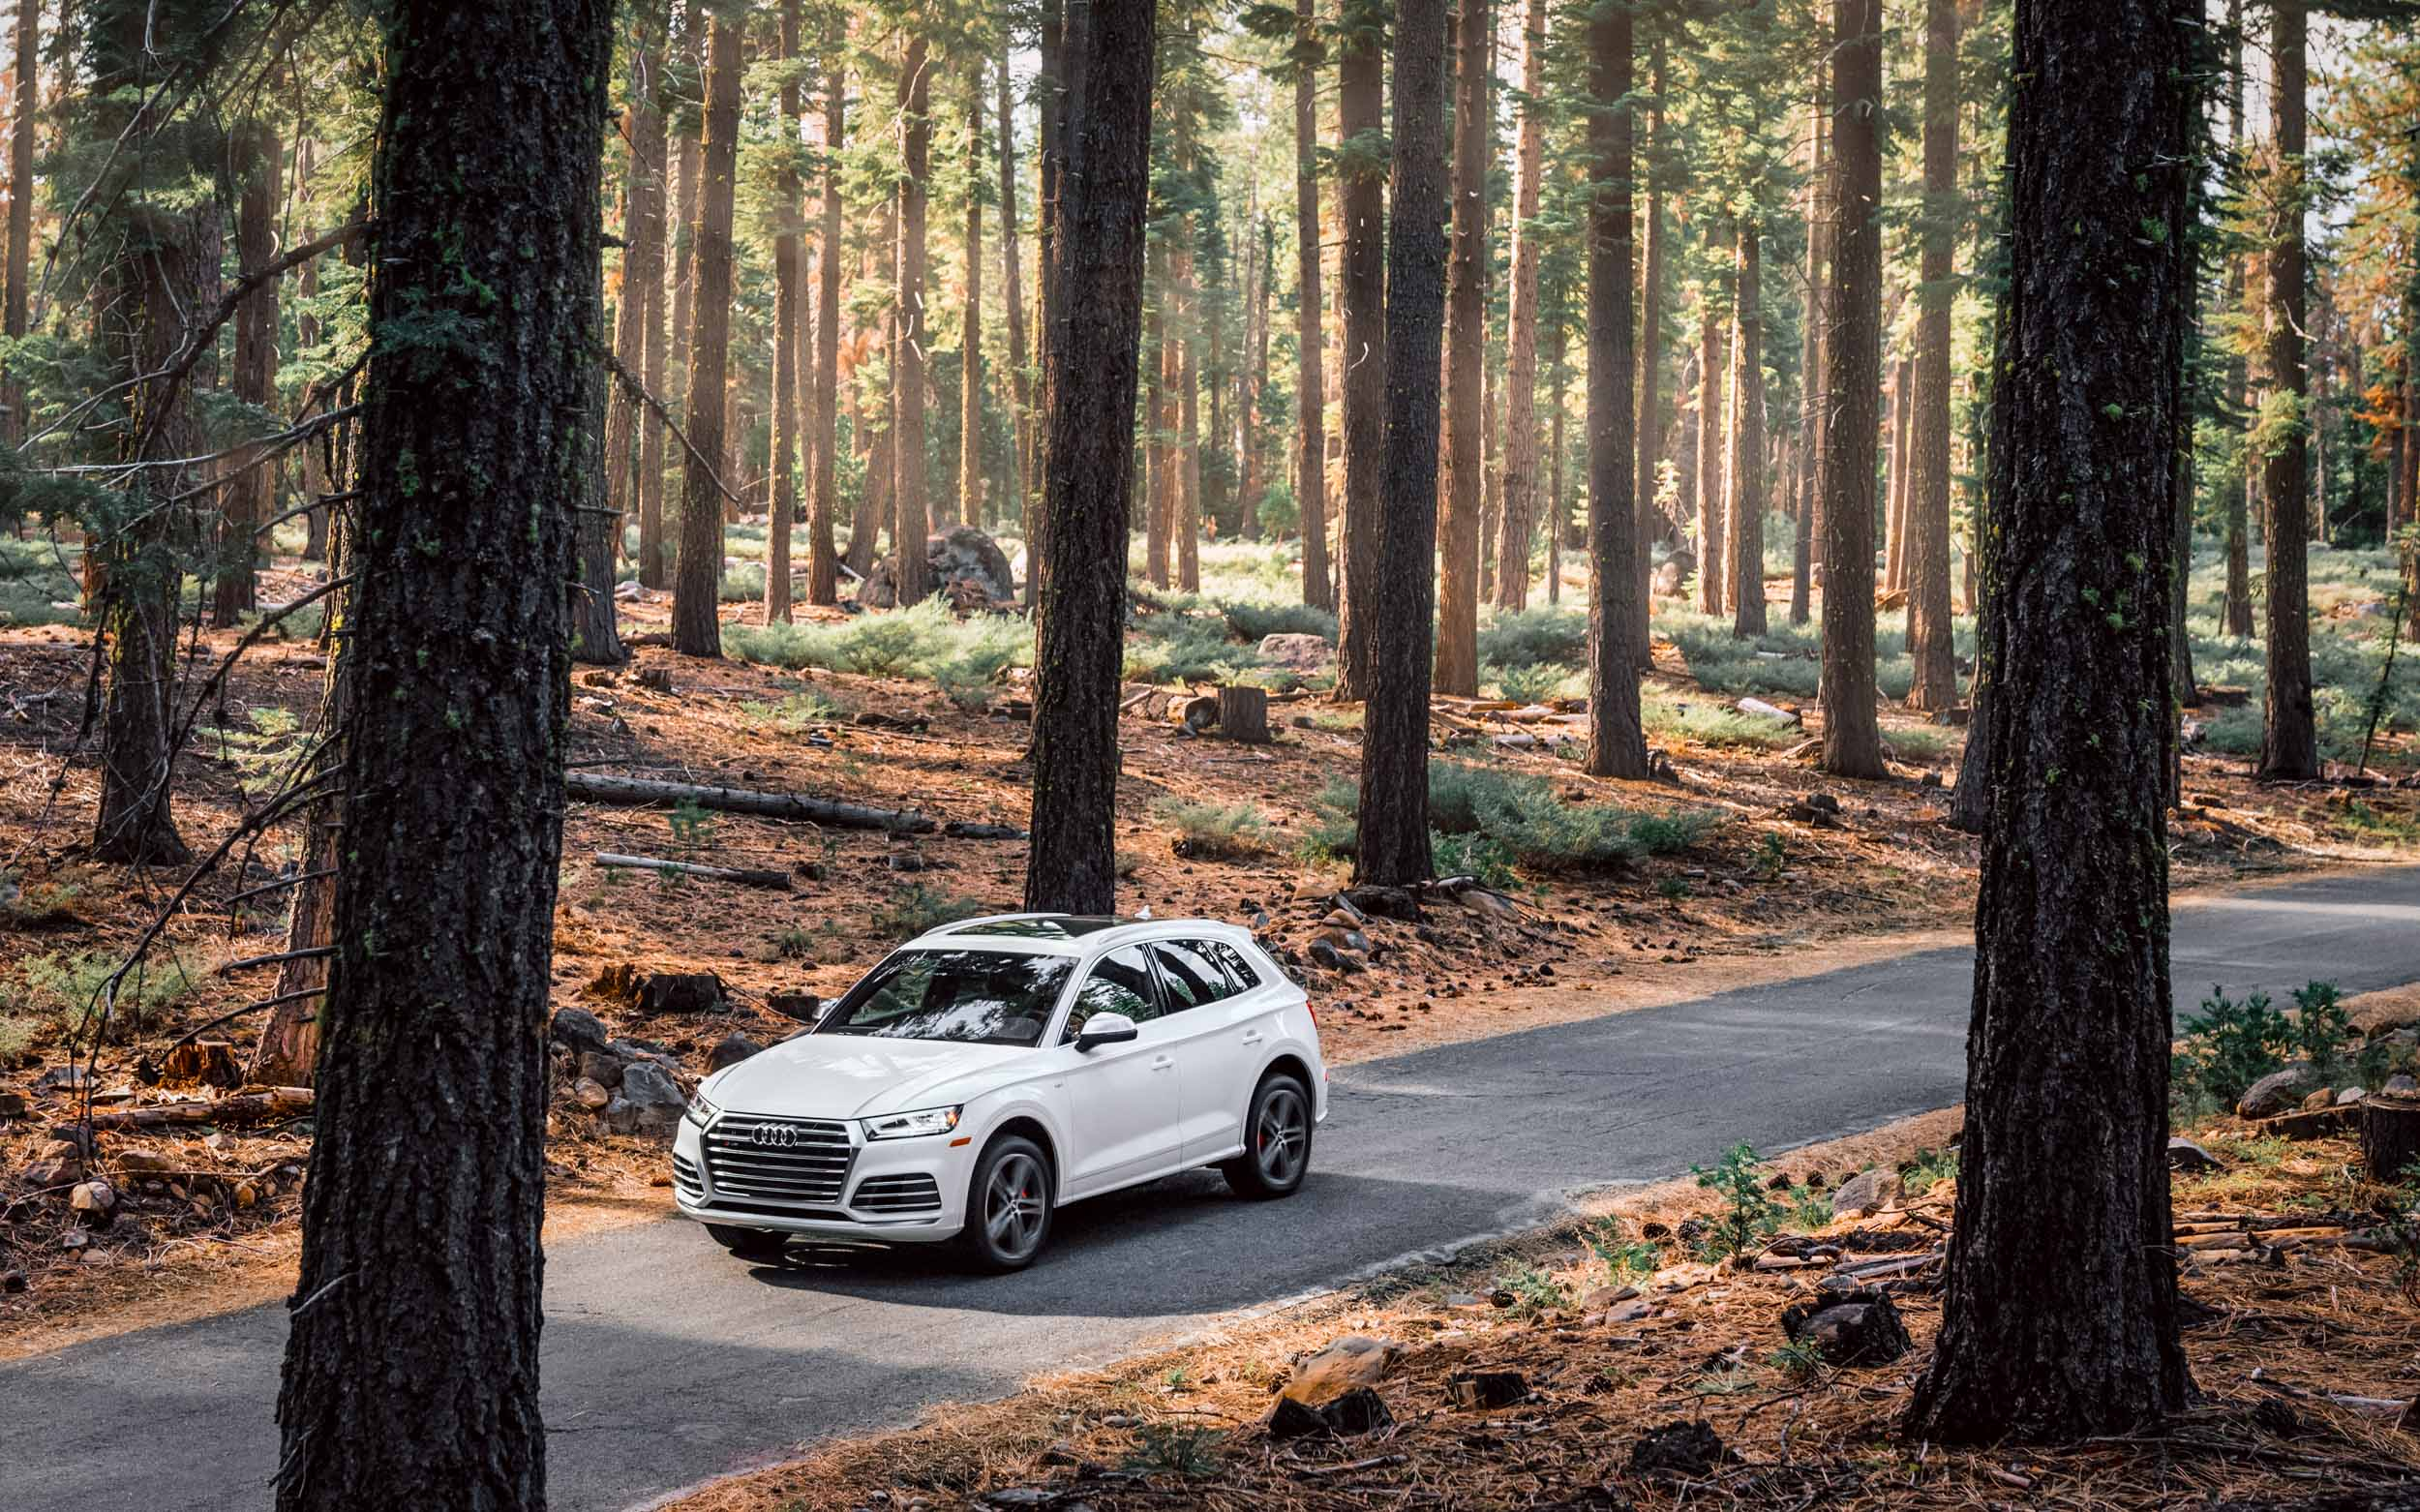 A white Audi Q7 drives through a beautiful forest near Lassen Volcanic National Park